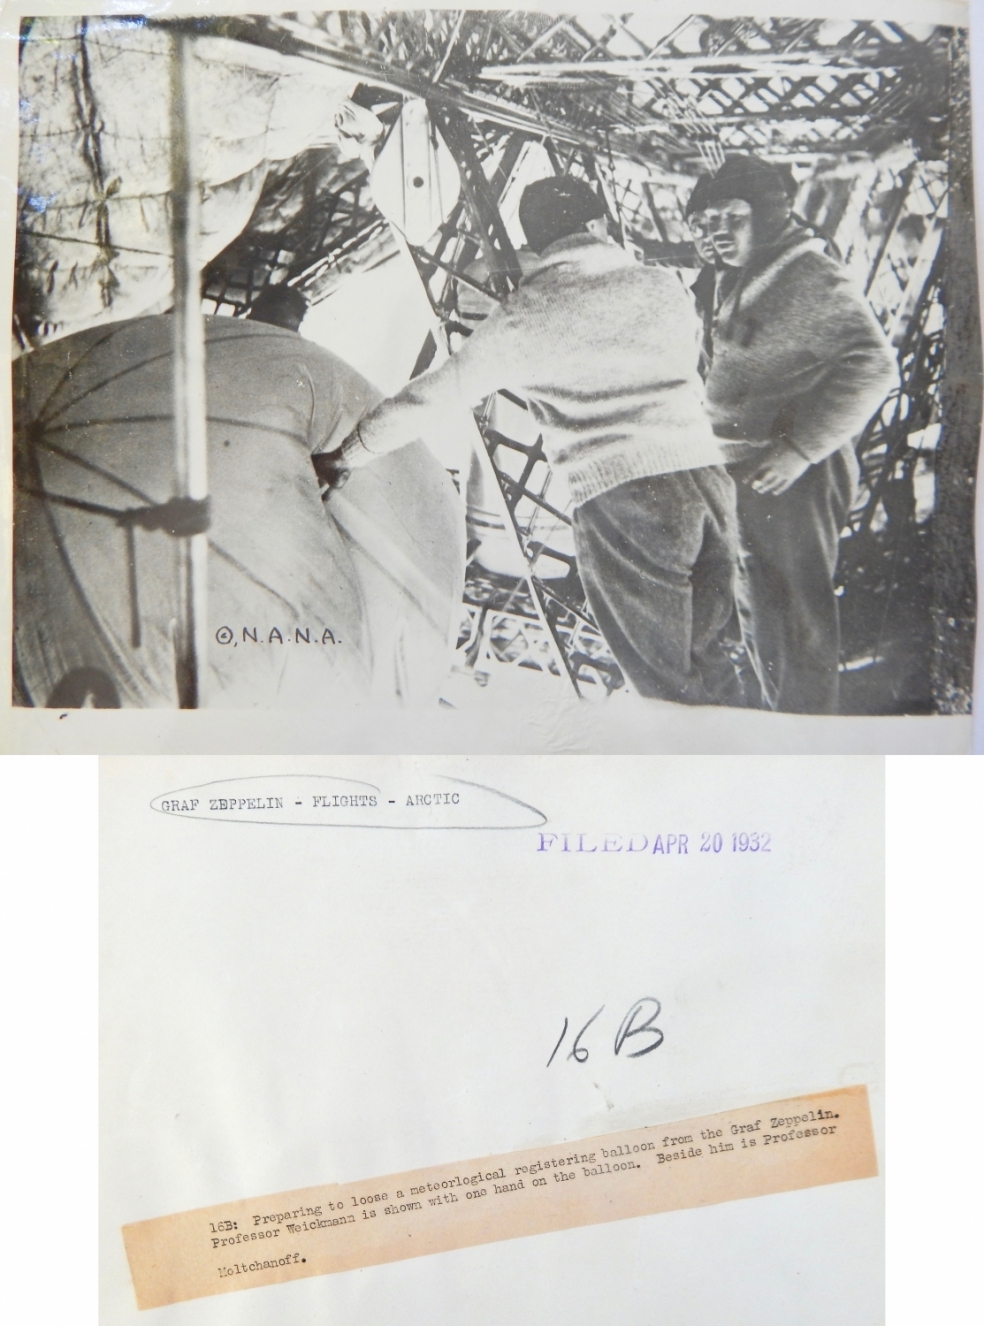 1931--Preparing for radiosonde release